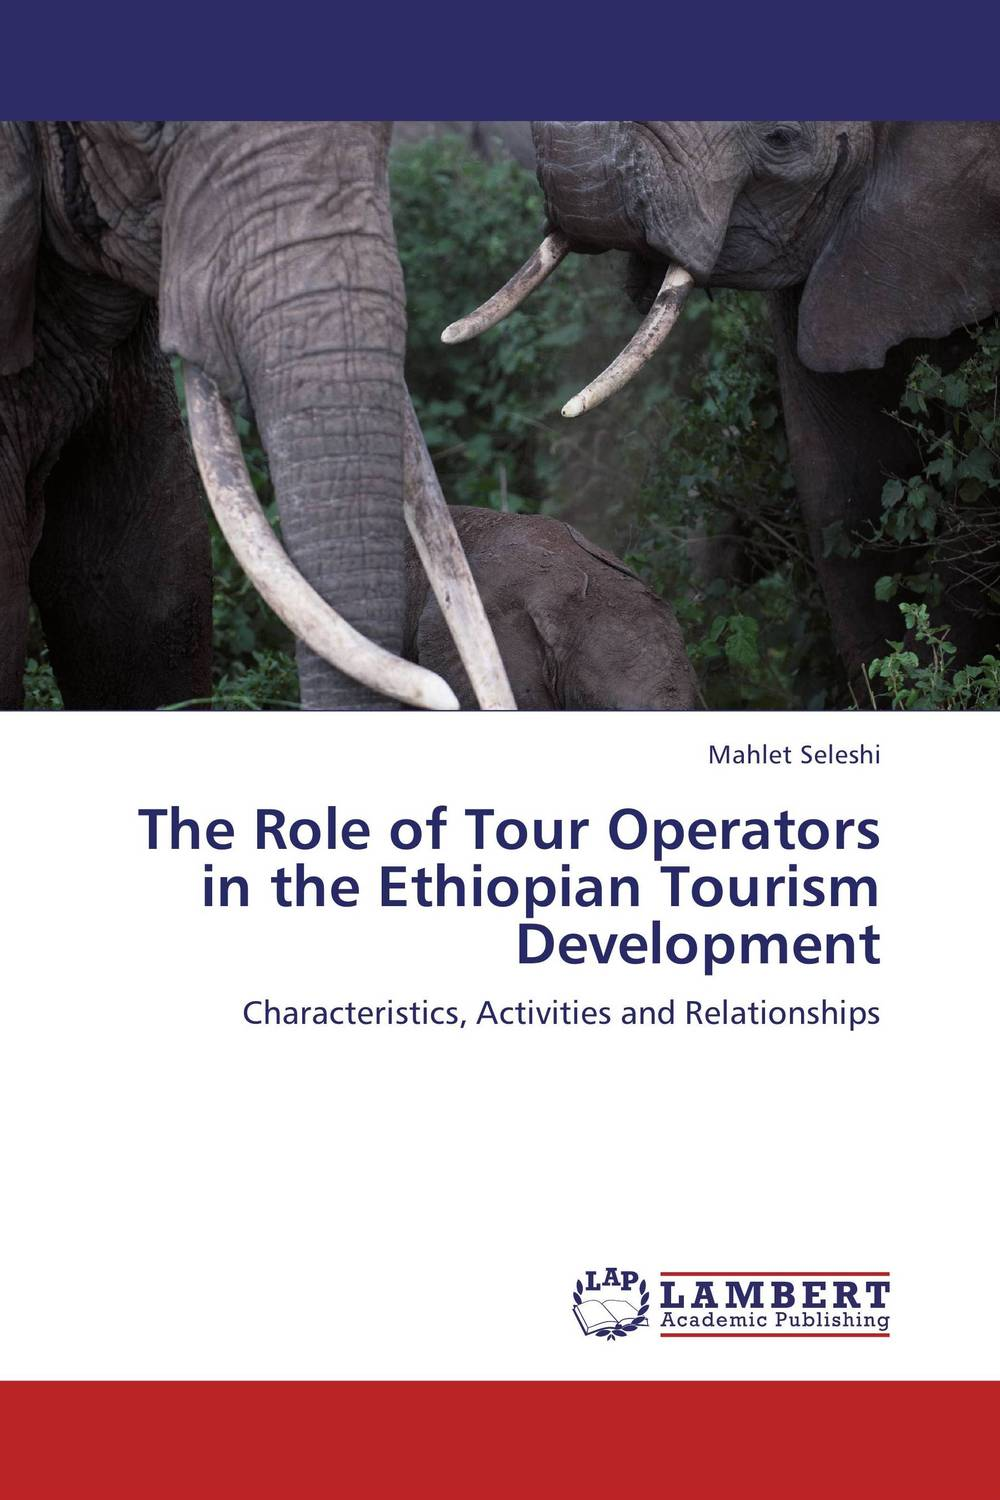 The Role of Tour Operators in the Ethiopian Tourism Development seeing things as they are